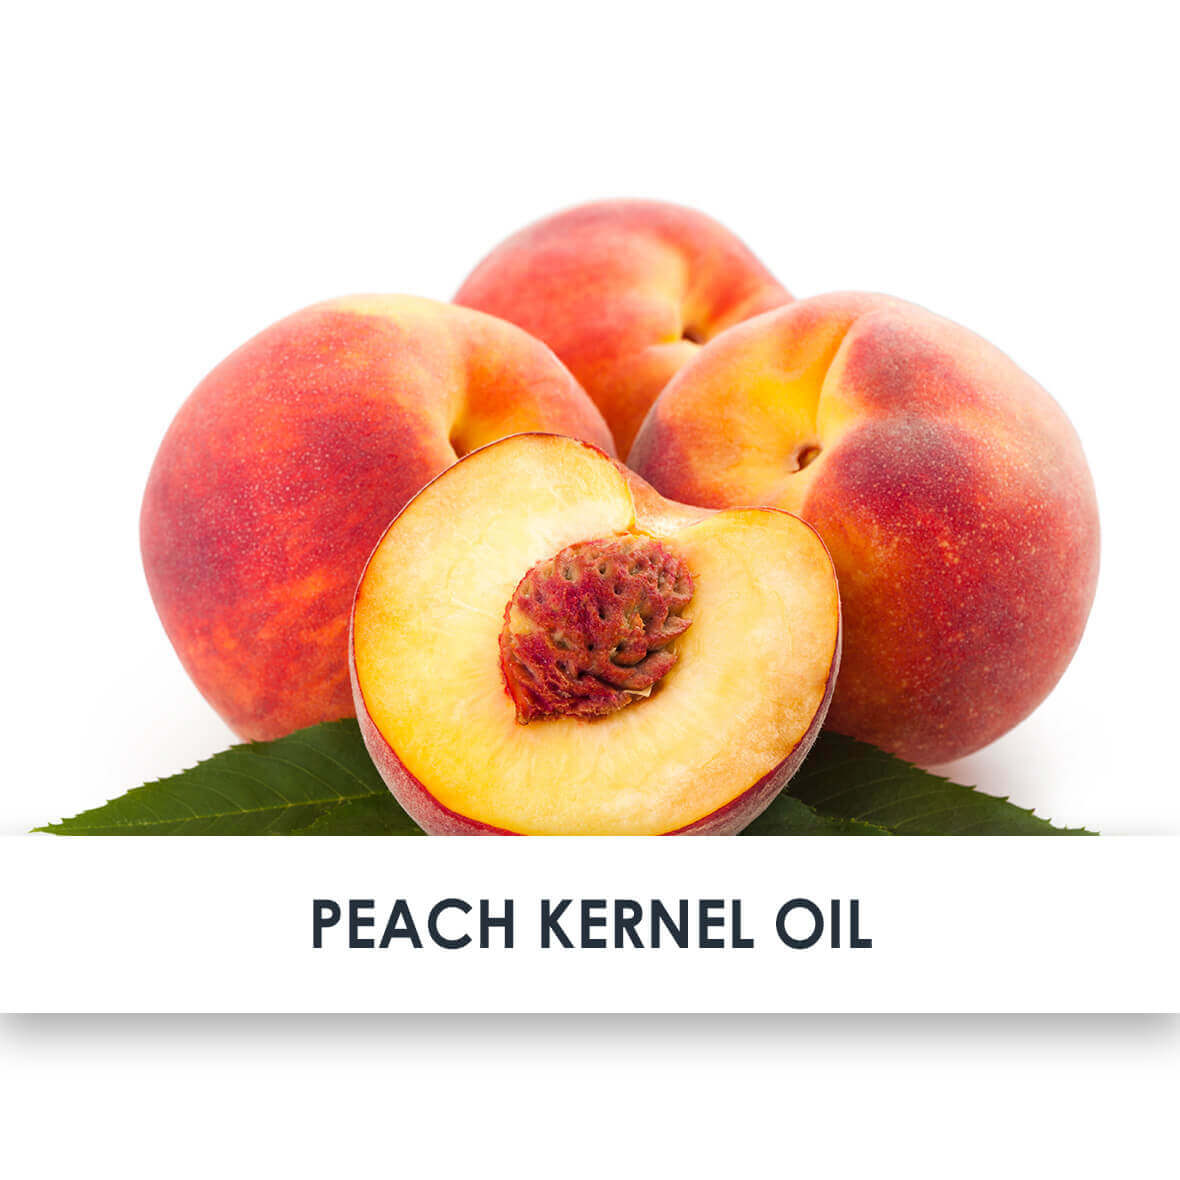 Peach Kernel Oil Skincare Benefits